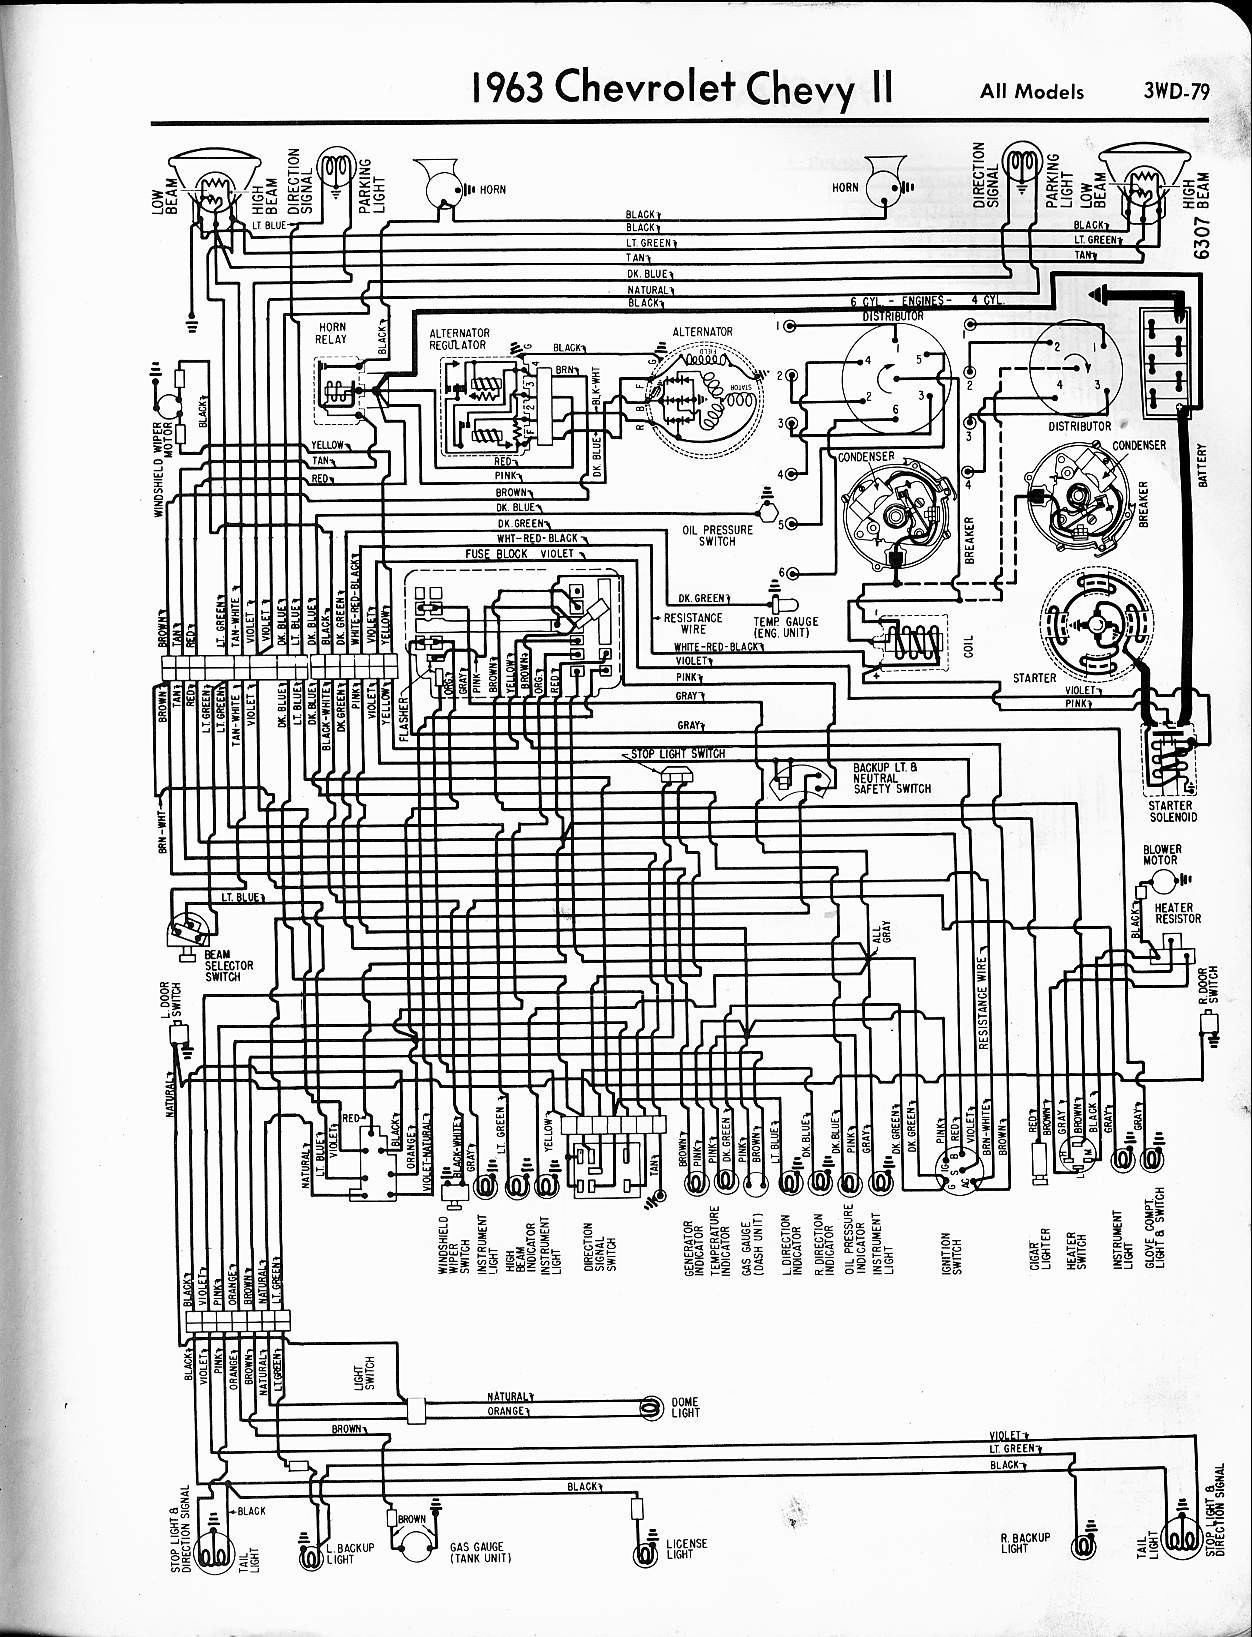 Categorybandreject Filter Circuits Wikimedia Commons